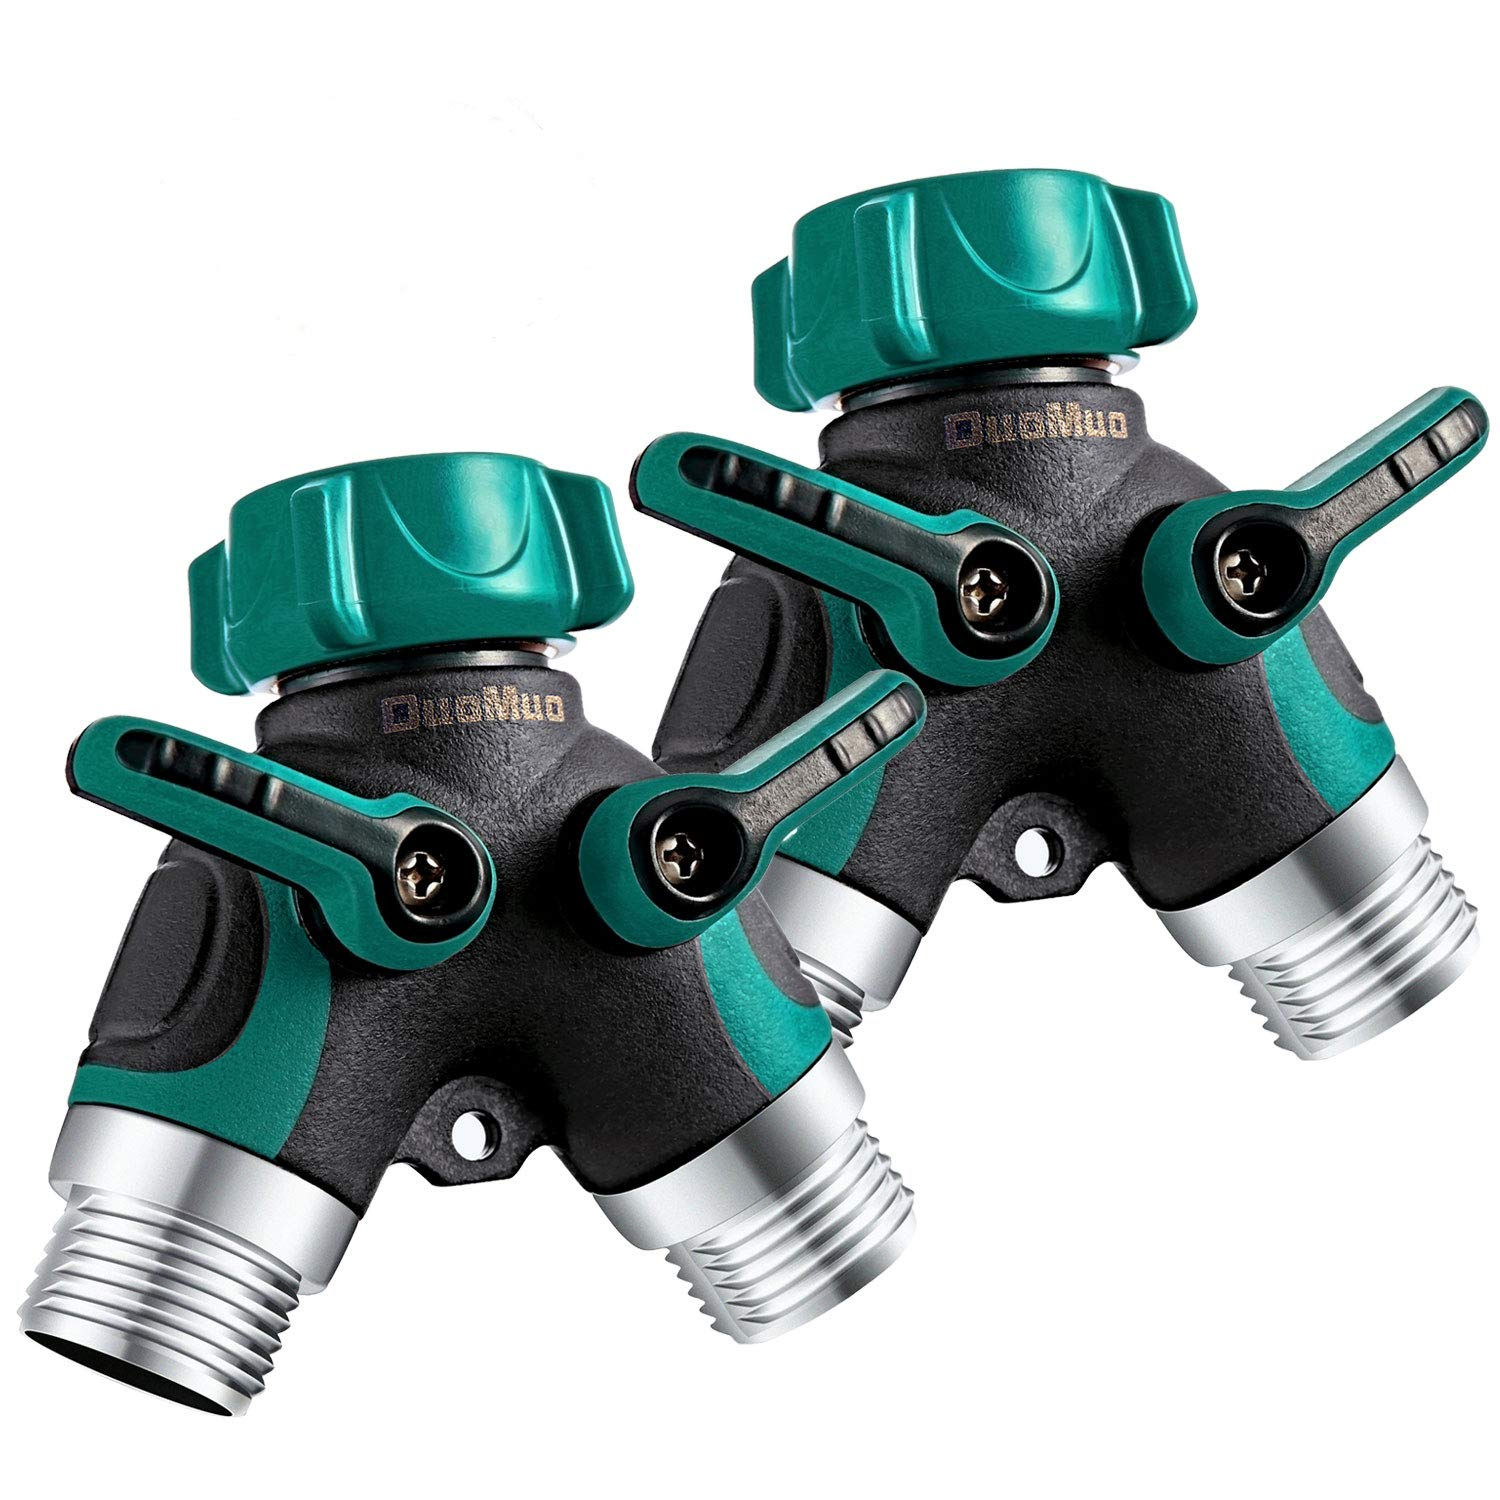 DuoMuo 2 Pack 2 Way Y Hose Splitter Hose Connector Garden Outdoor Faucet - with Comfortable Rubberized Grip - 10 Washers